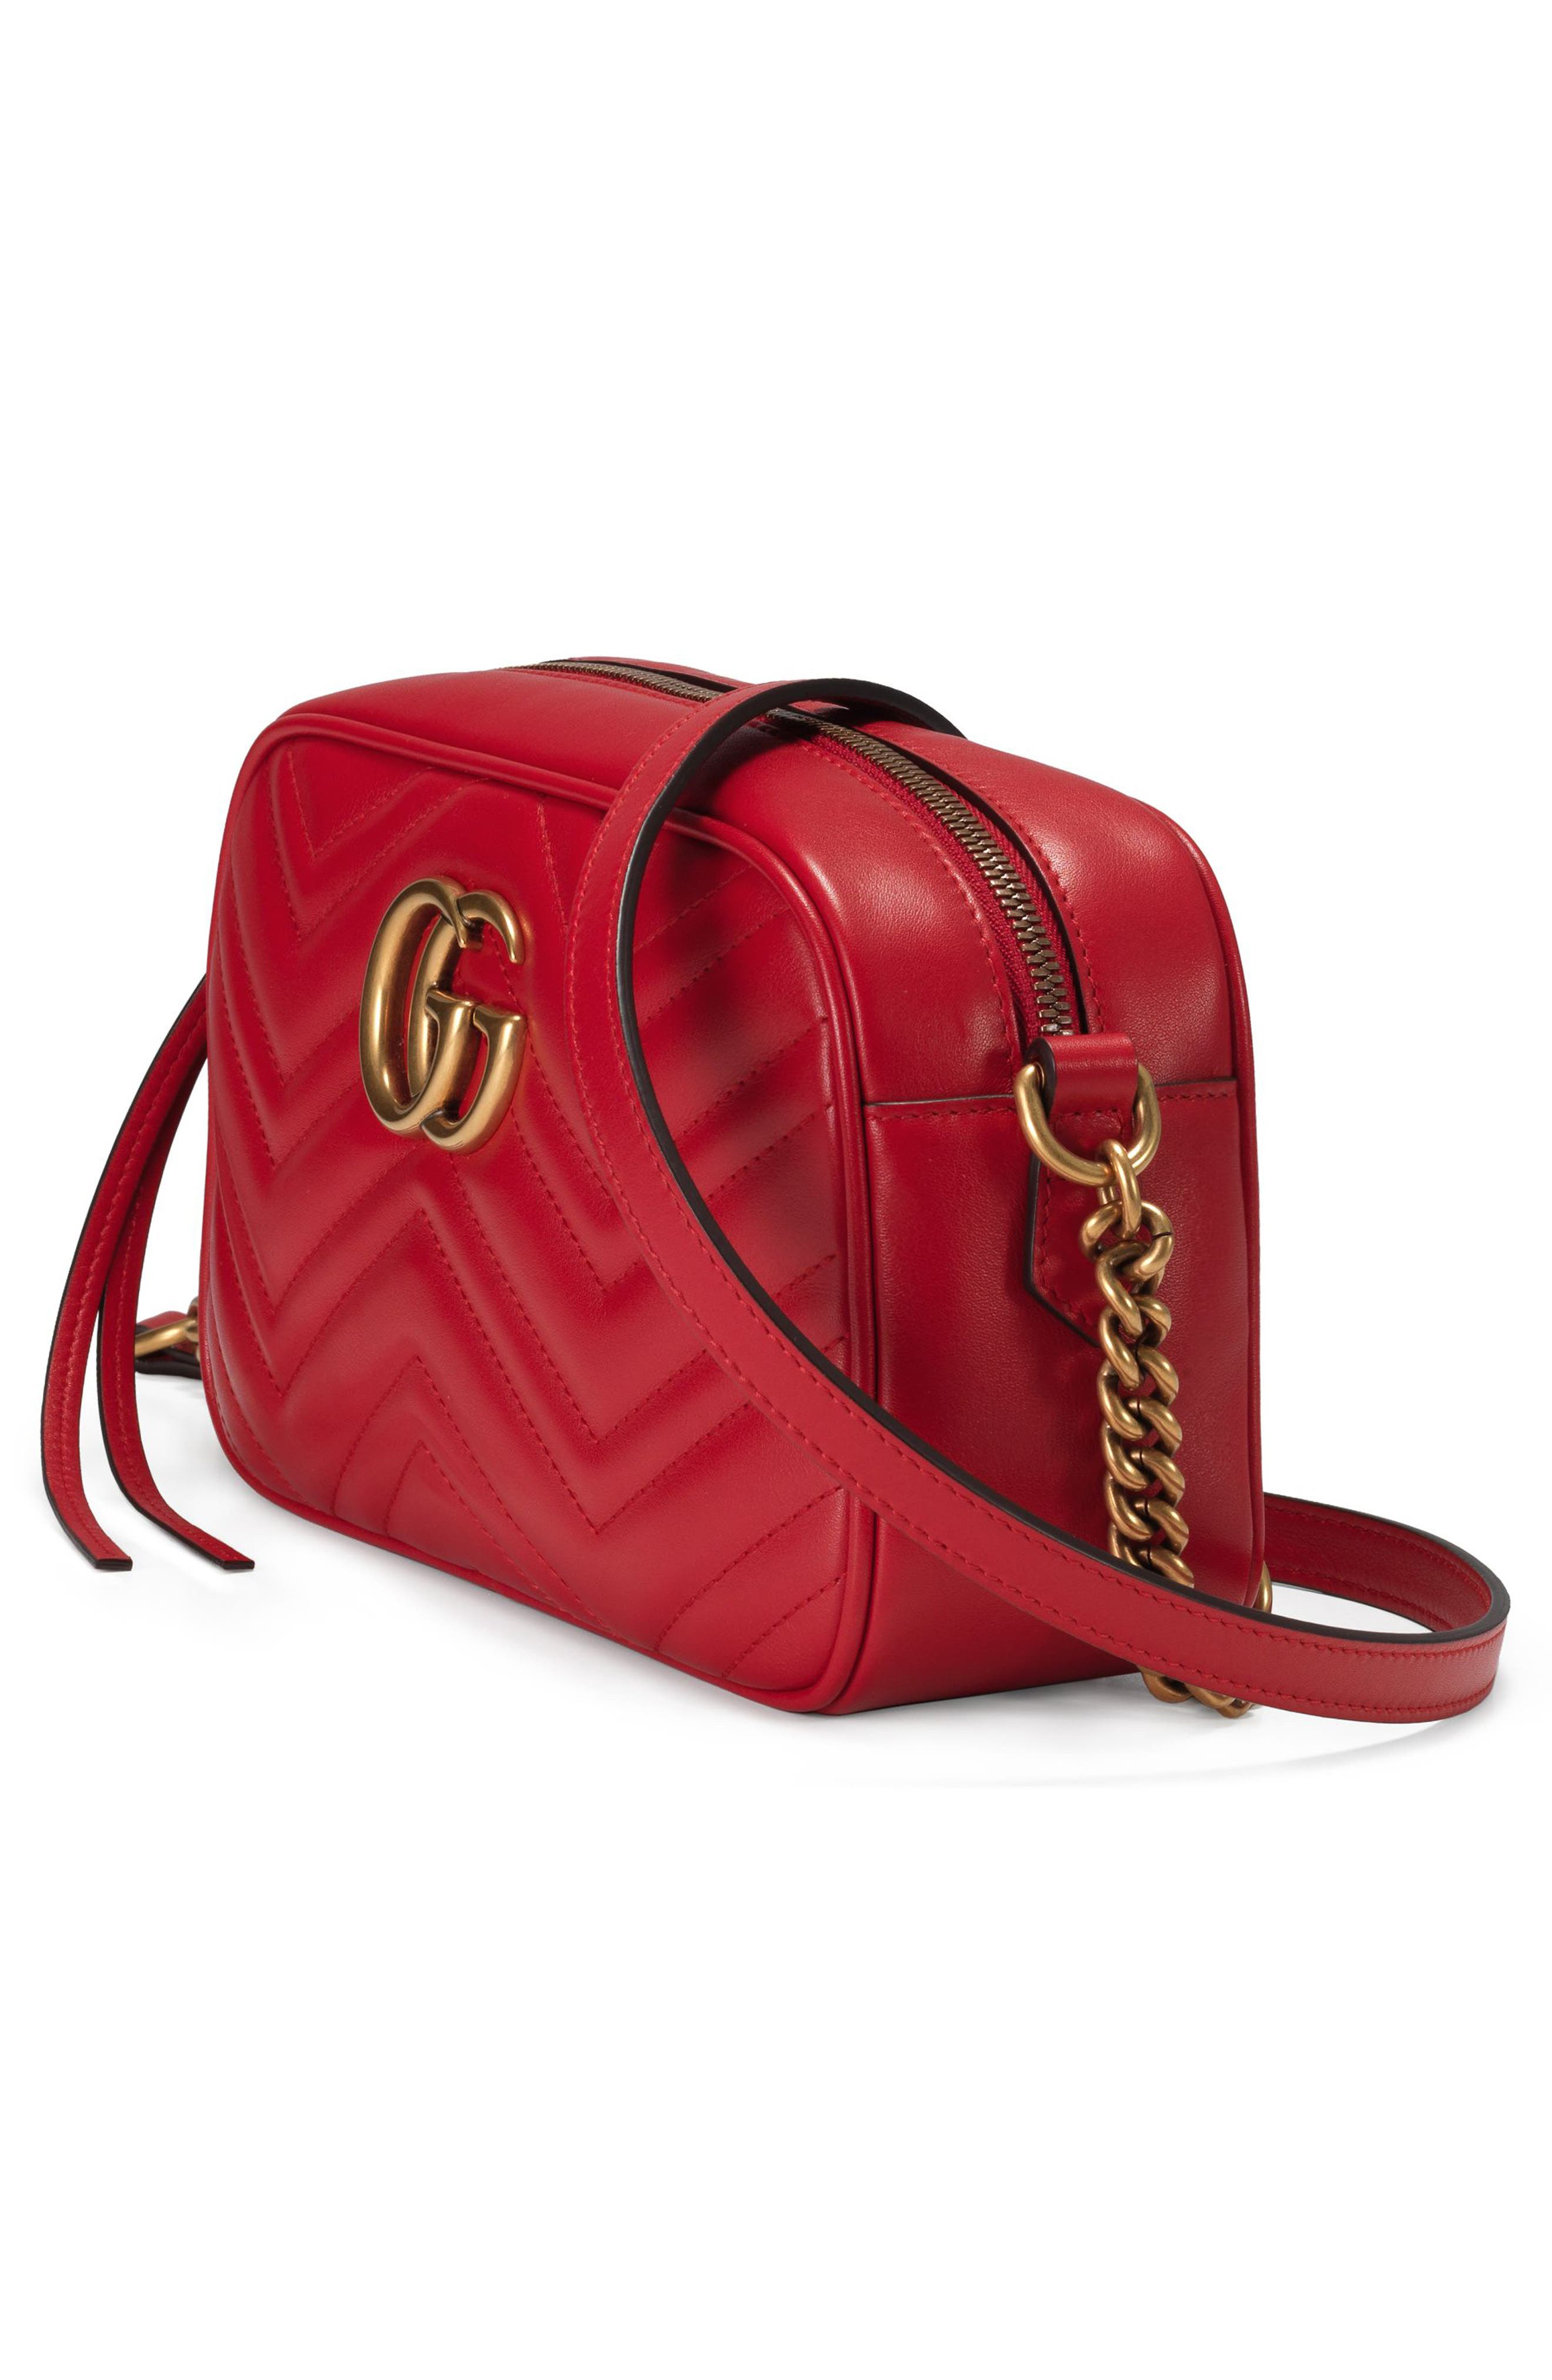 GUCCI,                             Small GG Marmont 2.0 Matelassé Leather Camera Bag,                             Alternate thumbnail 4, color,                             HIBISCUS RED/ HIBISCUS RED